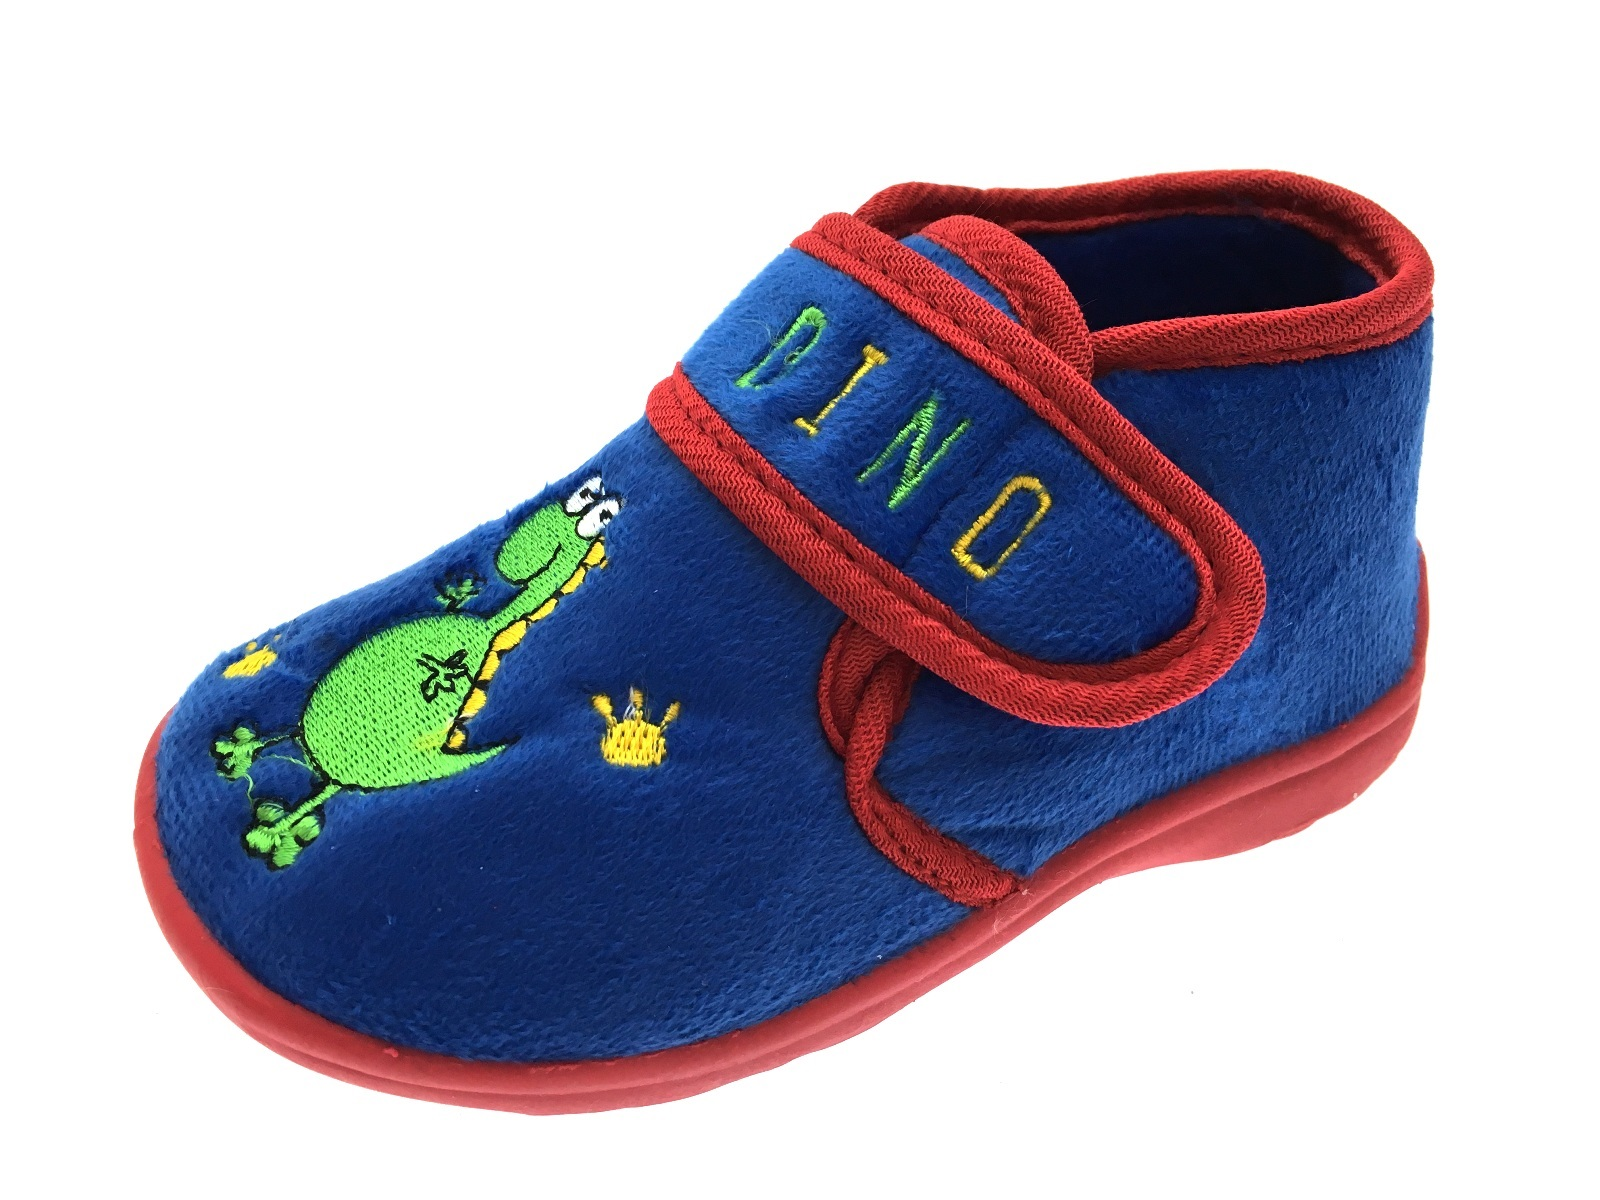 Amazon offers boys' slippers in toddler and kids' sizes from the best brands on the market. Search our selection and you'll come across fun options from Reef, Sanuk, Converse, DADAWEN, Acorn, Sesame Street, UGG Australia, and more.